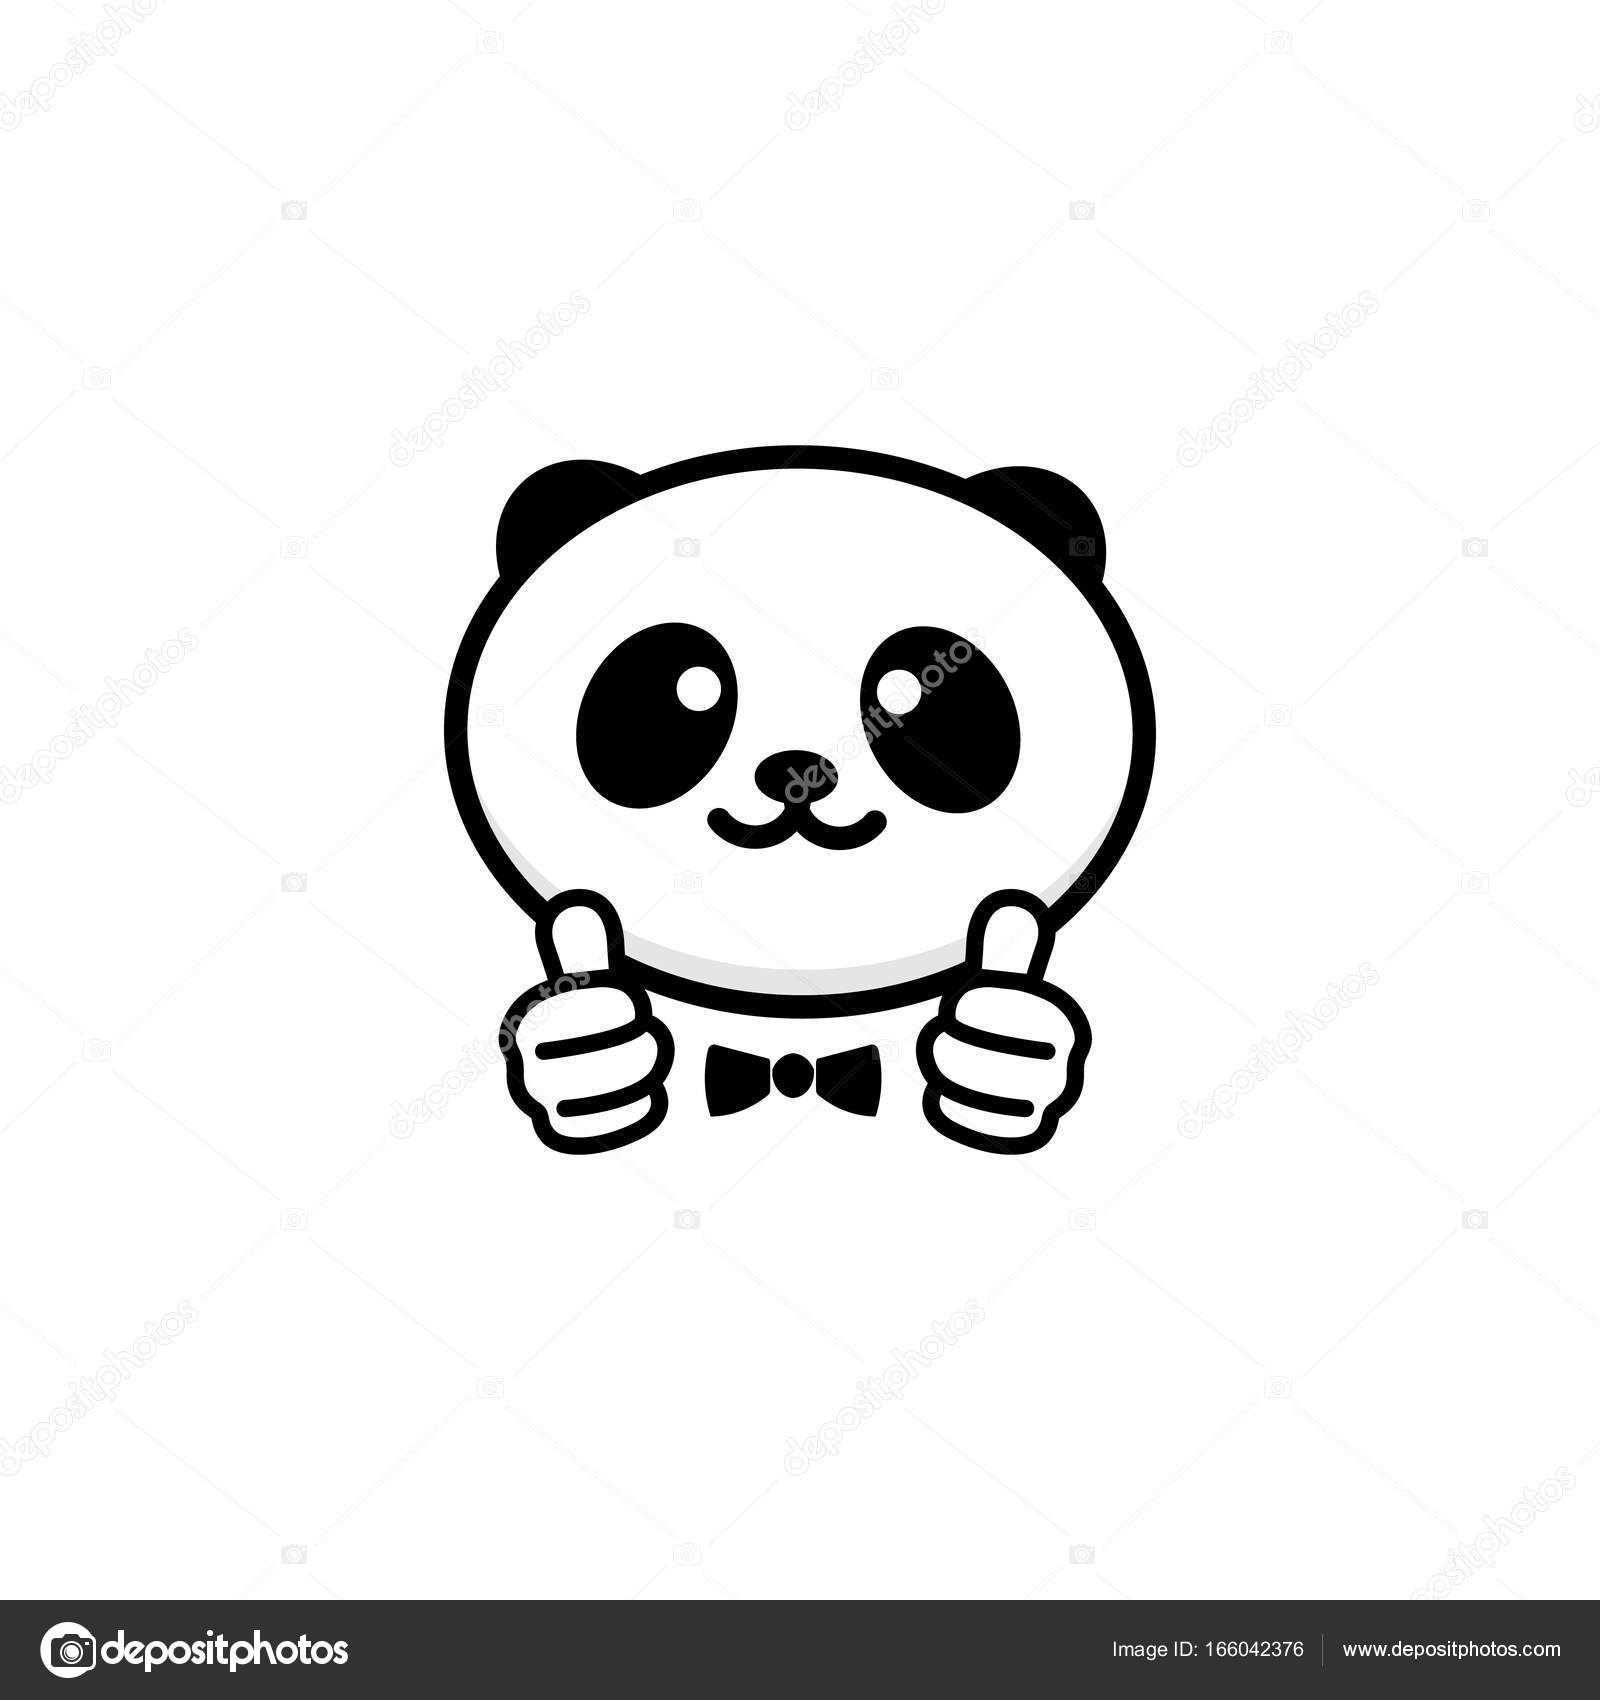 1600x1700 Ok Logo. Funny Little Cute Panda Showing Gesture With Hand